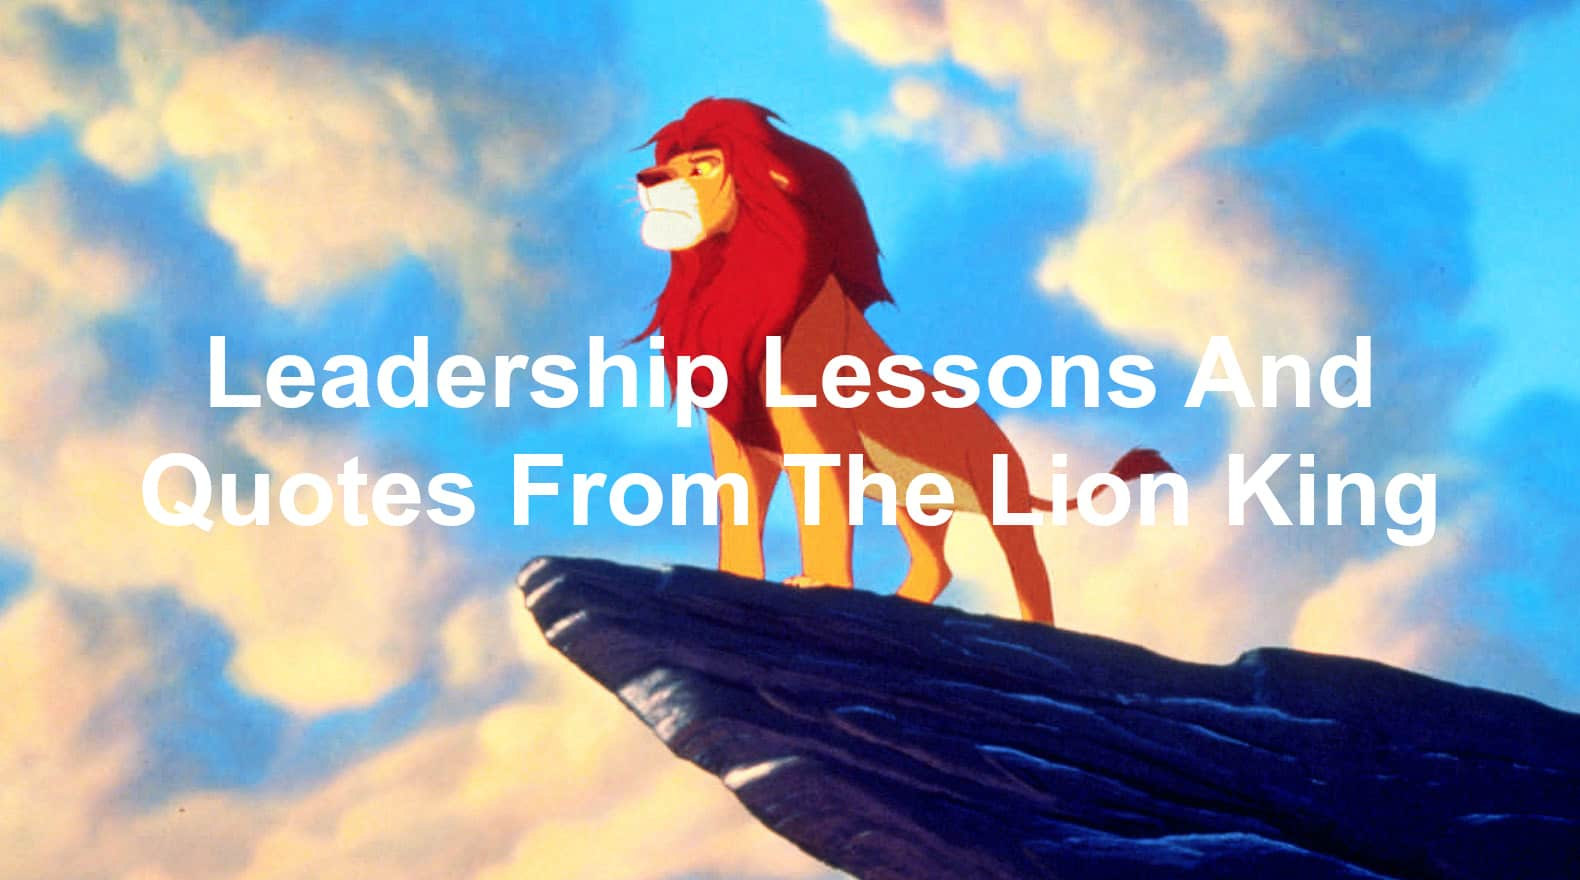 quotes and leadership lessons from The Lion King